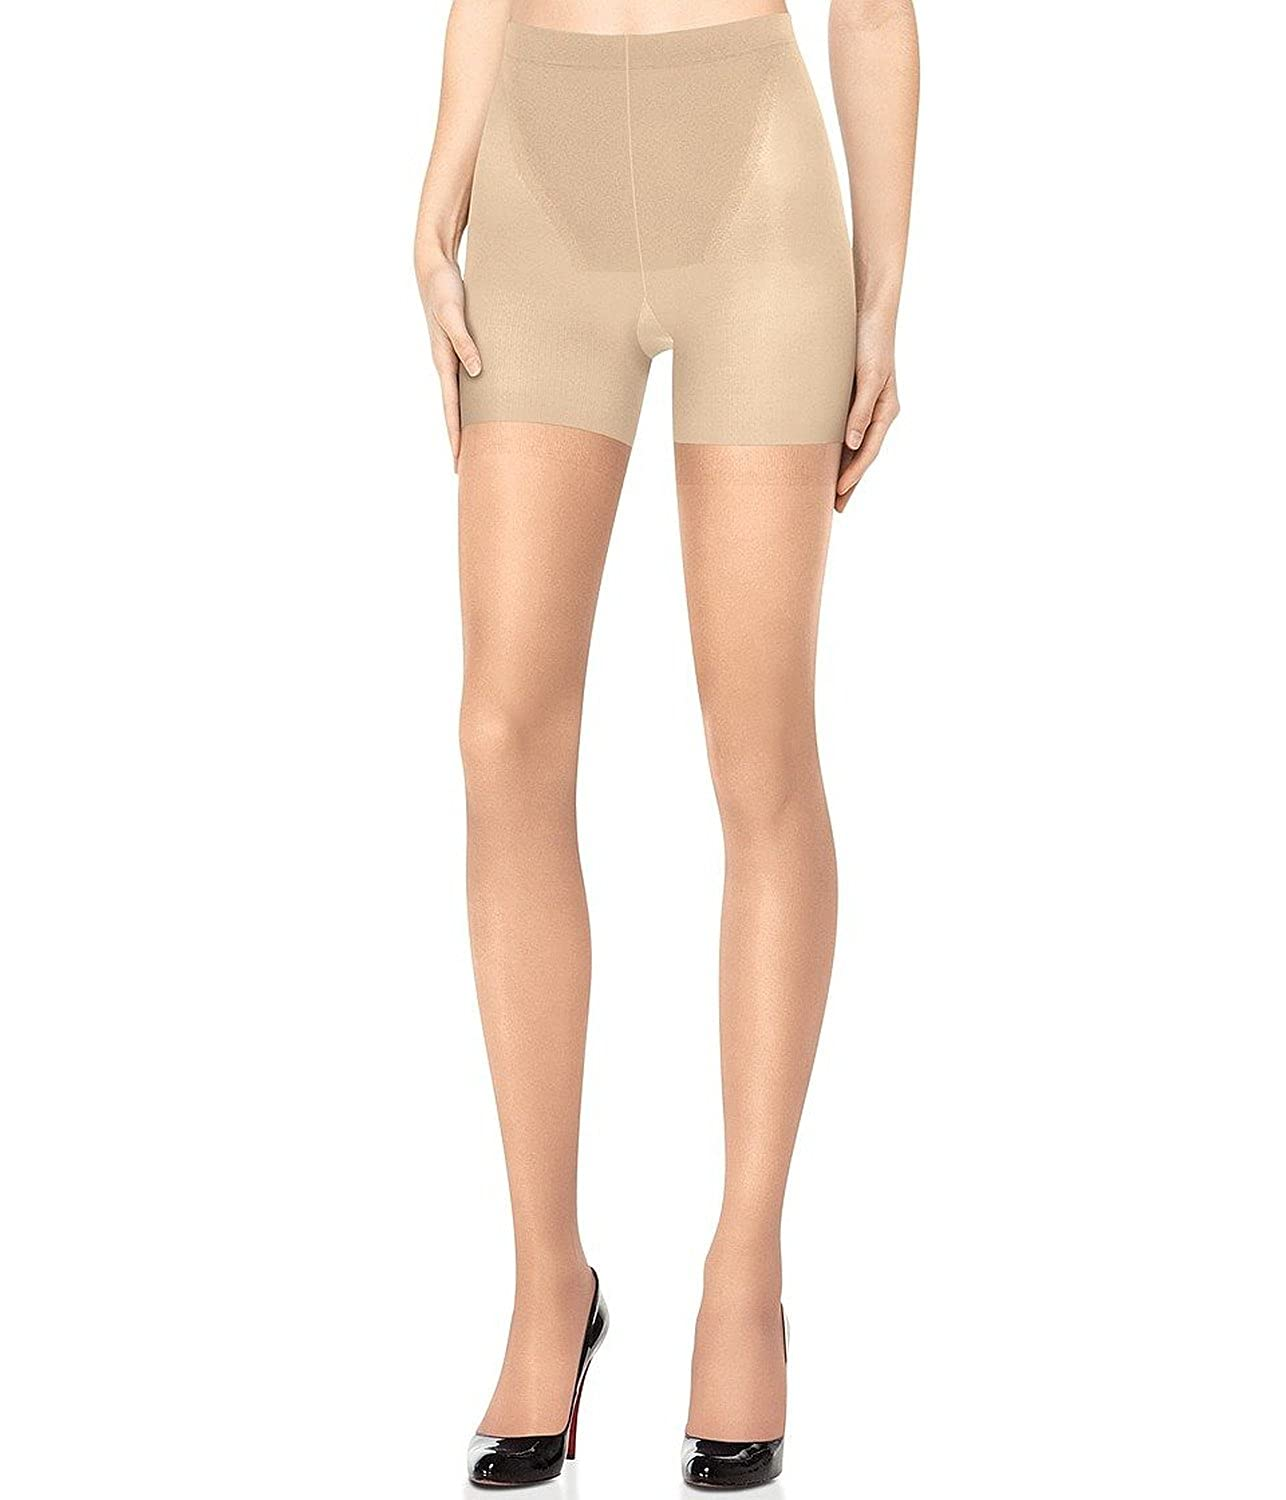 tm SPANX Womens in-Power Line Super Shaping Sheers